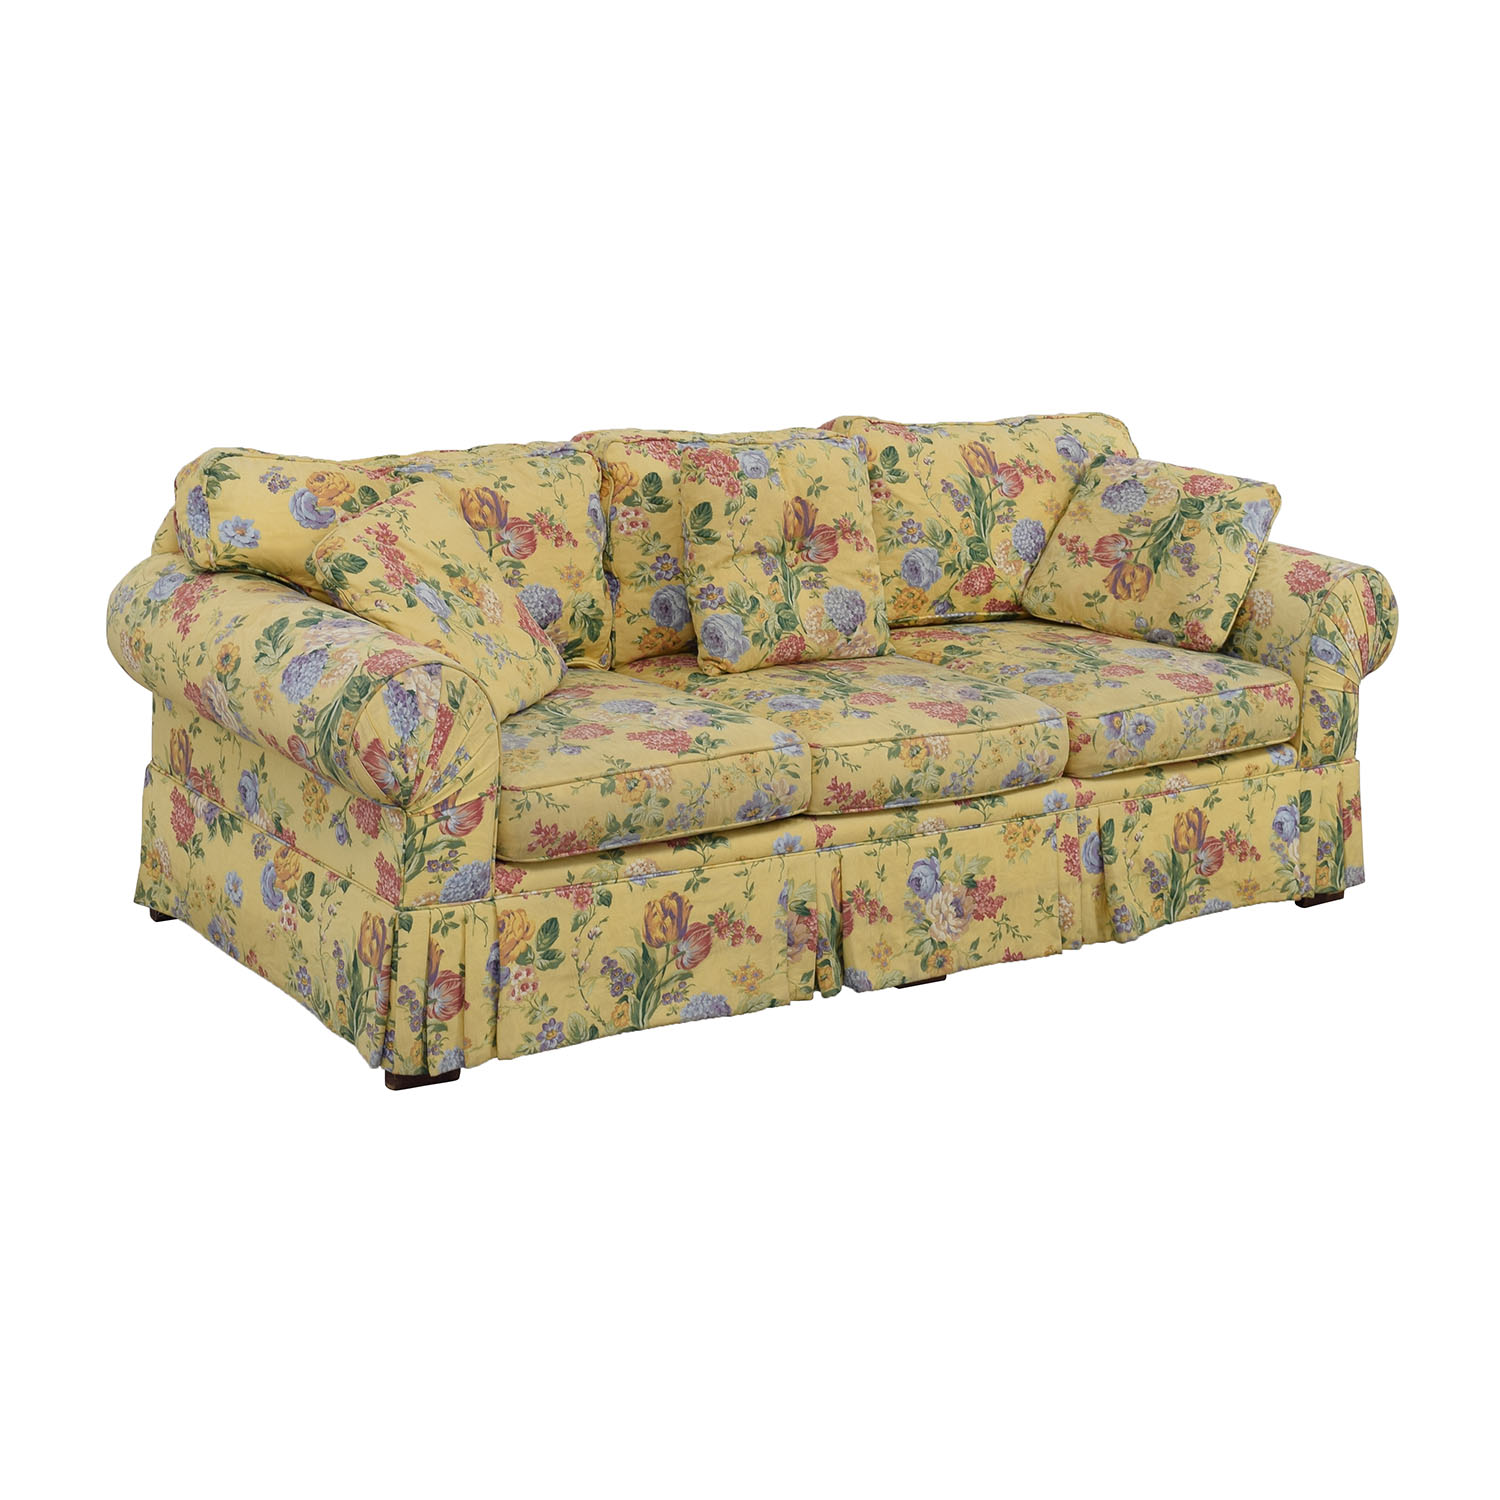 Etonnant ... Buy Alexvale Yellow Floral Two Cushion Couch Alexvale ...